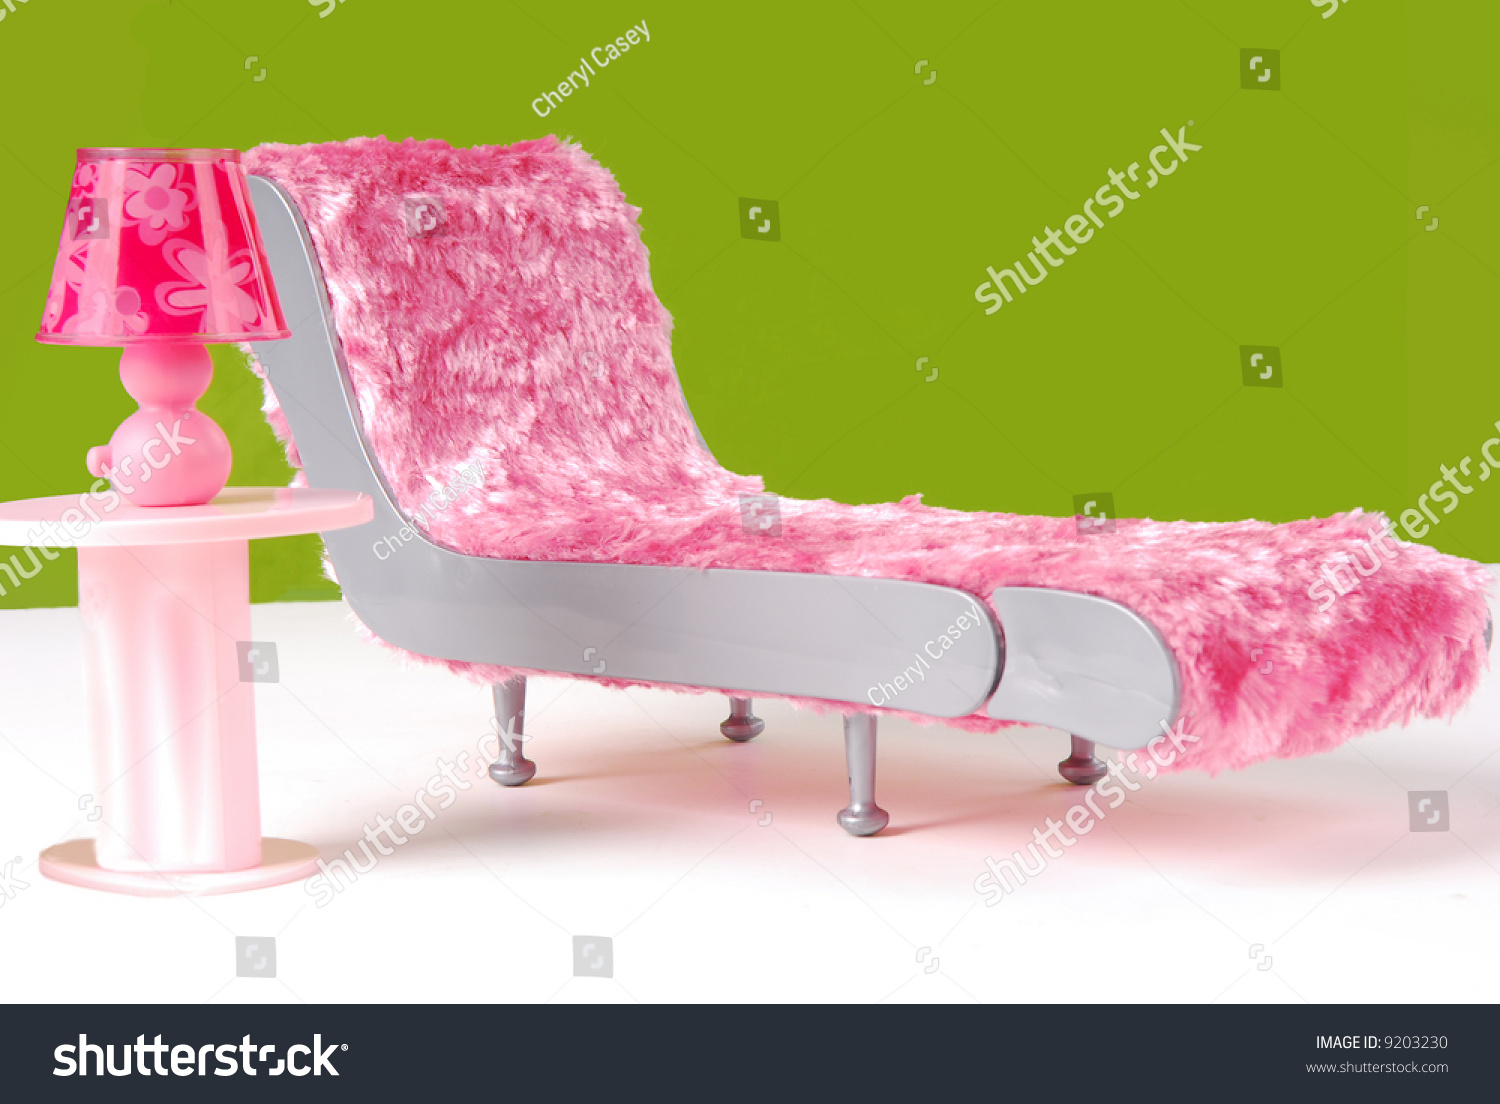 Fuzzy Lounge Chair Pink Lamp Green Stock Photo 9203230 - Shutterstock